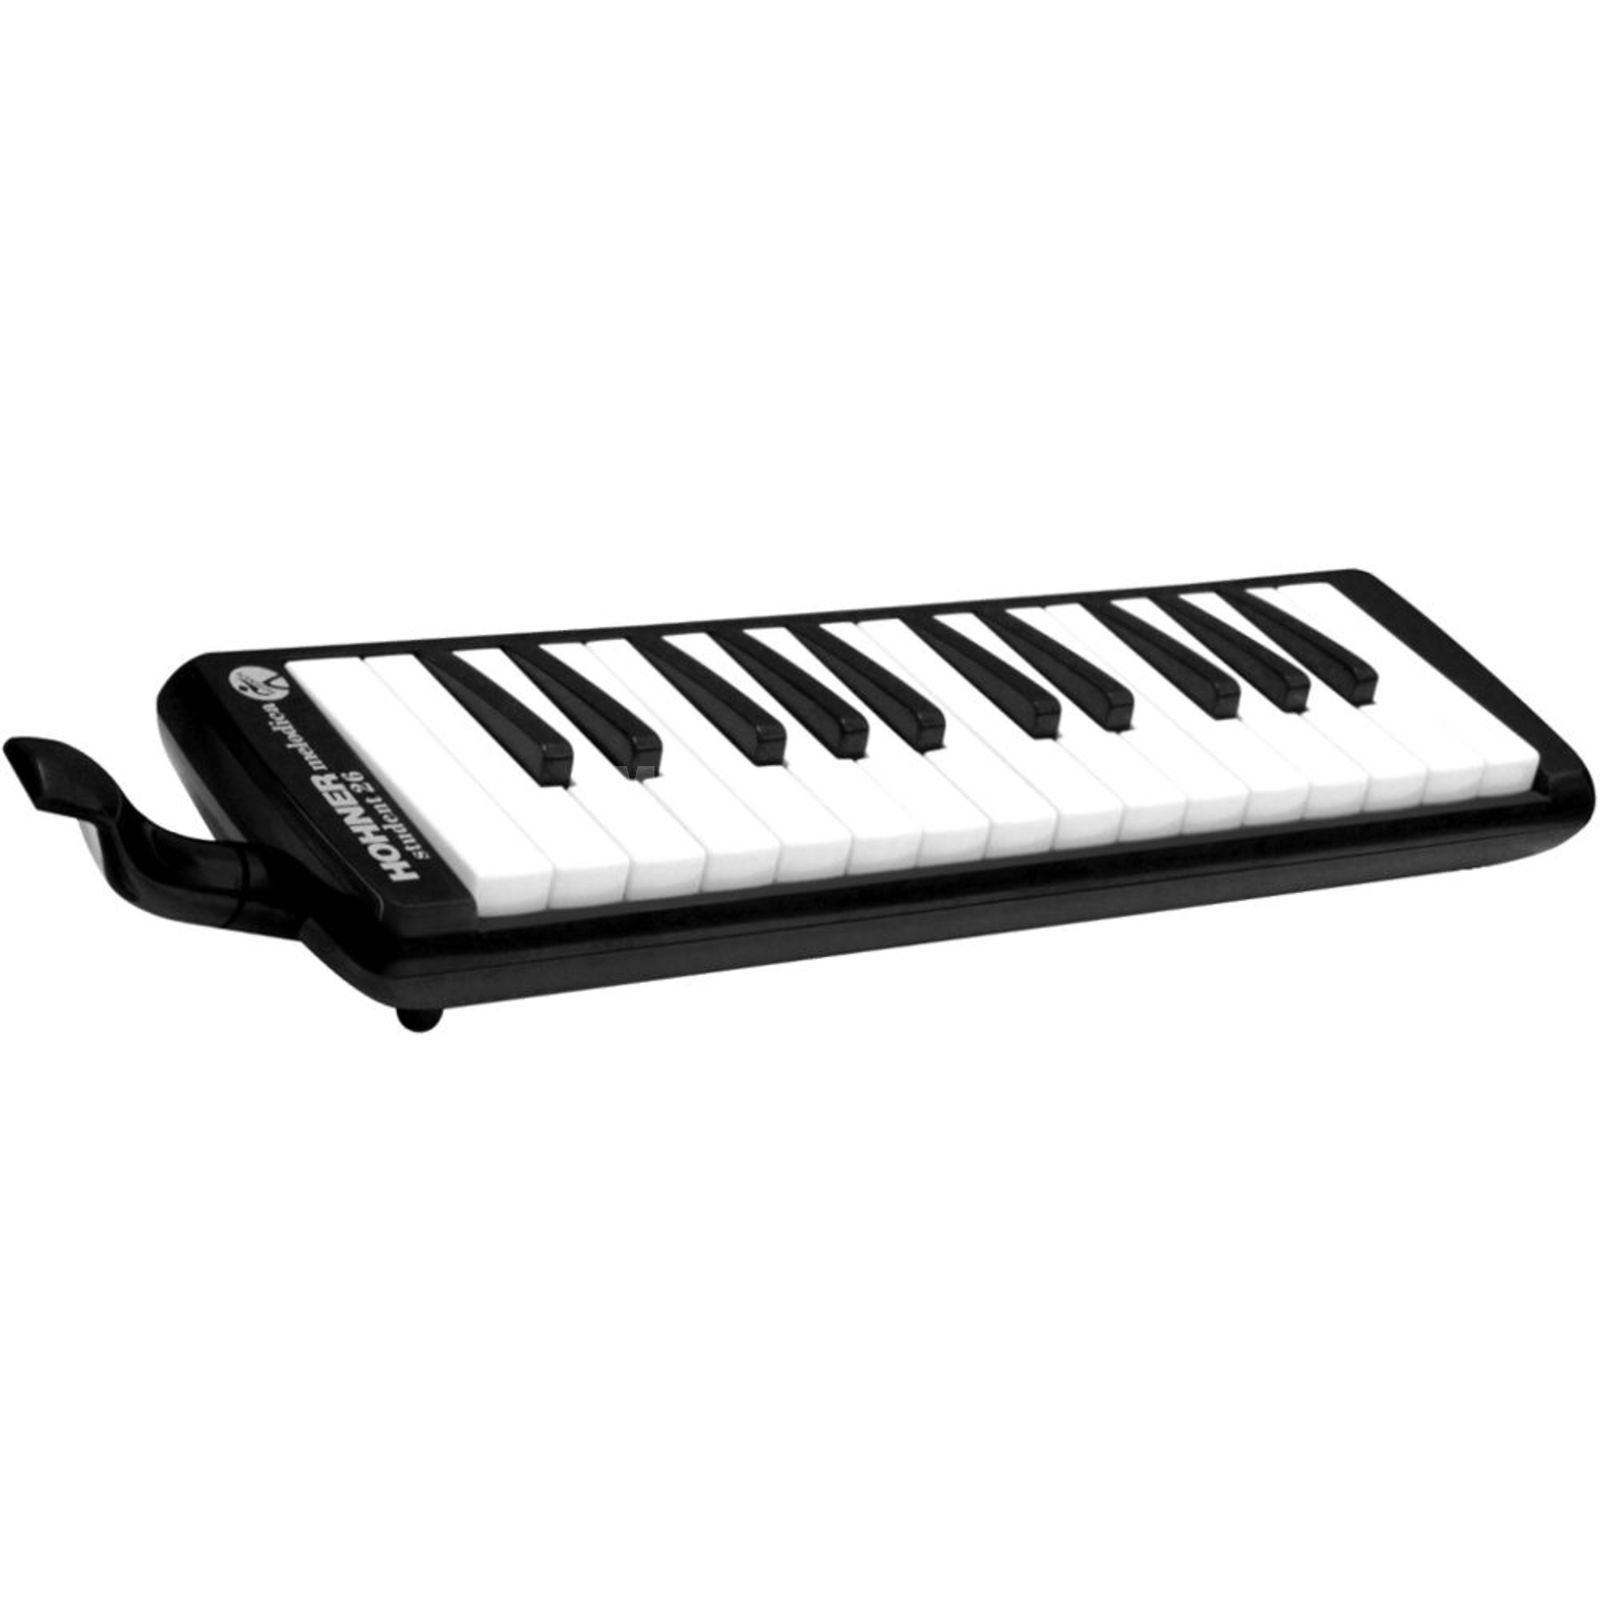 Hohner Student Melodica 26 - Black incl. Bag and Accessories Produktbillede